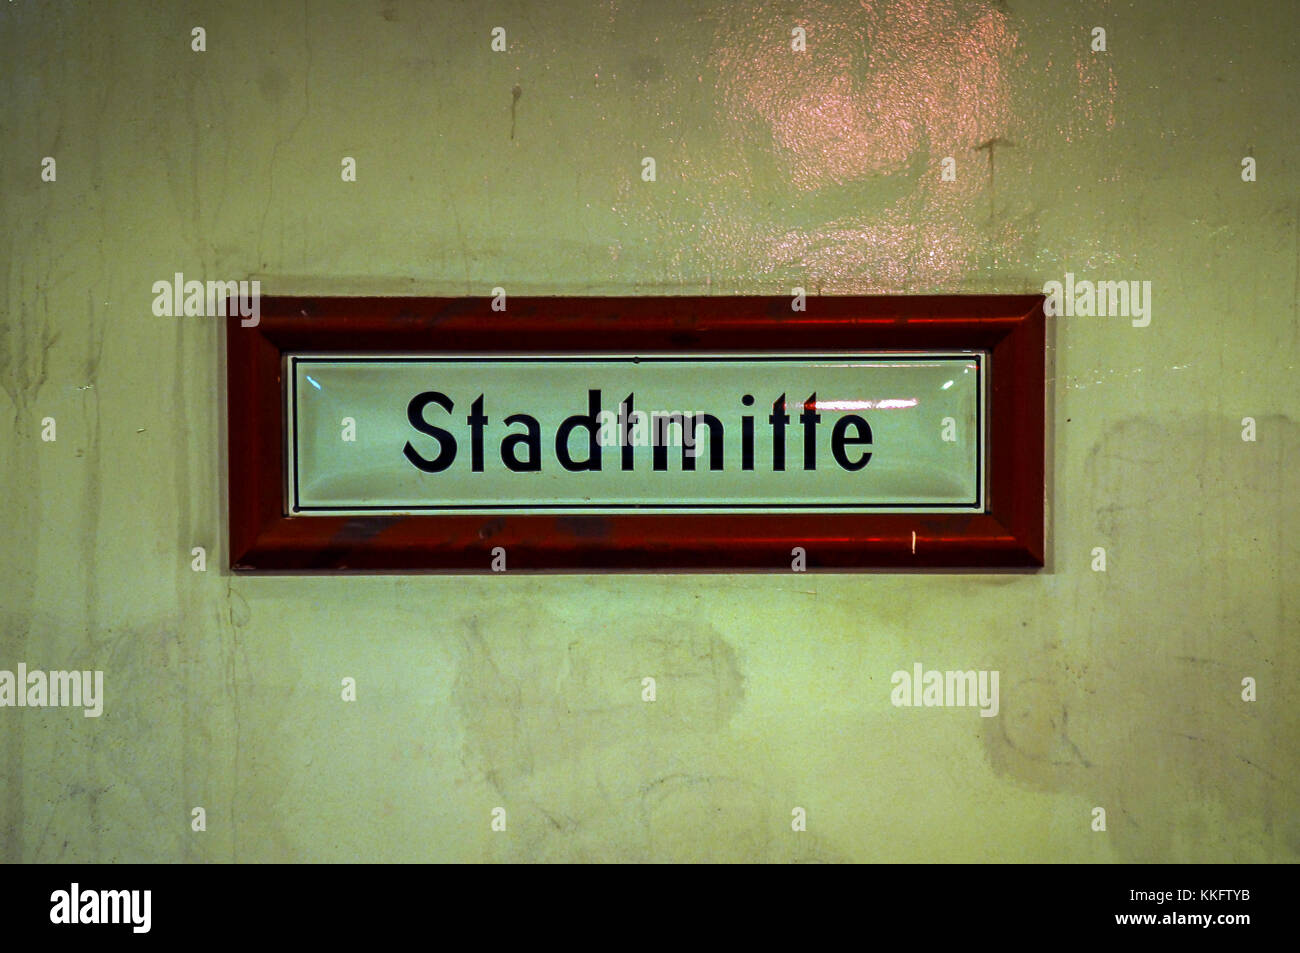 Berlin subway station name plate in Stadtmitte, Berlin,Germany. - Stock Image